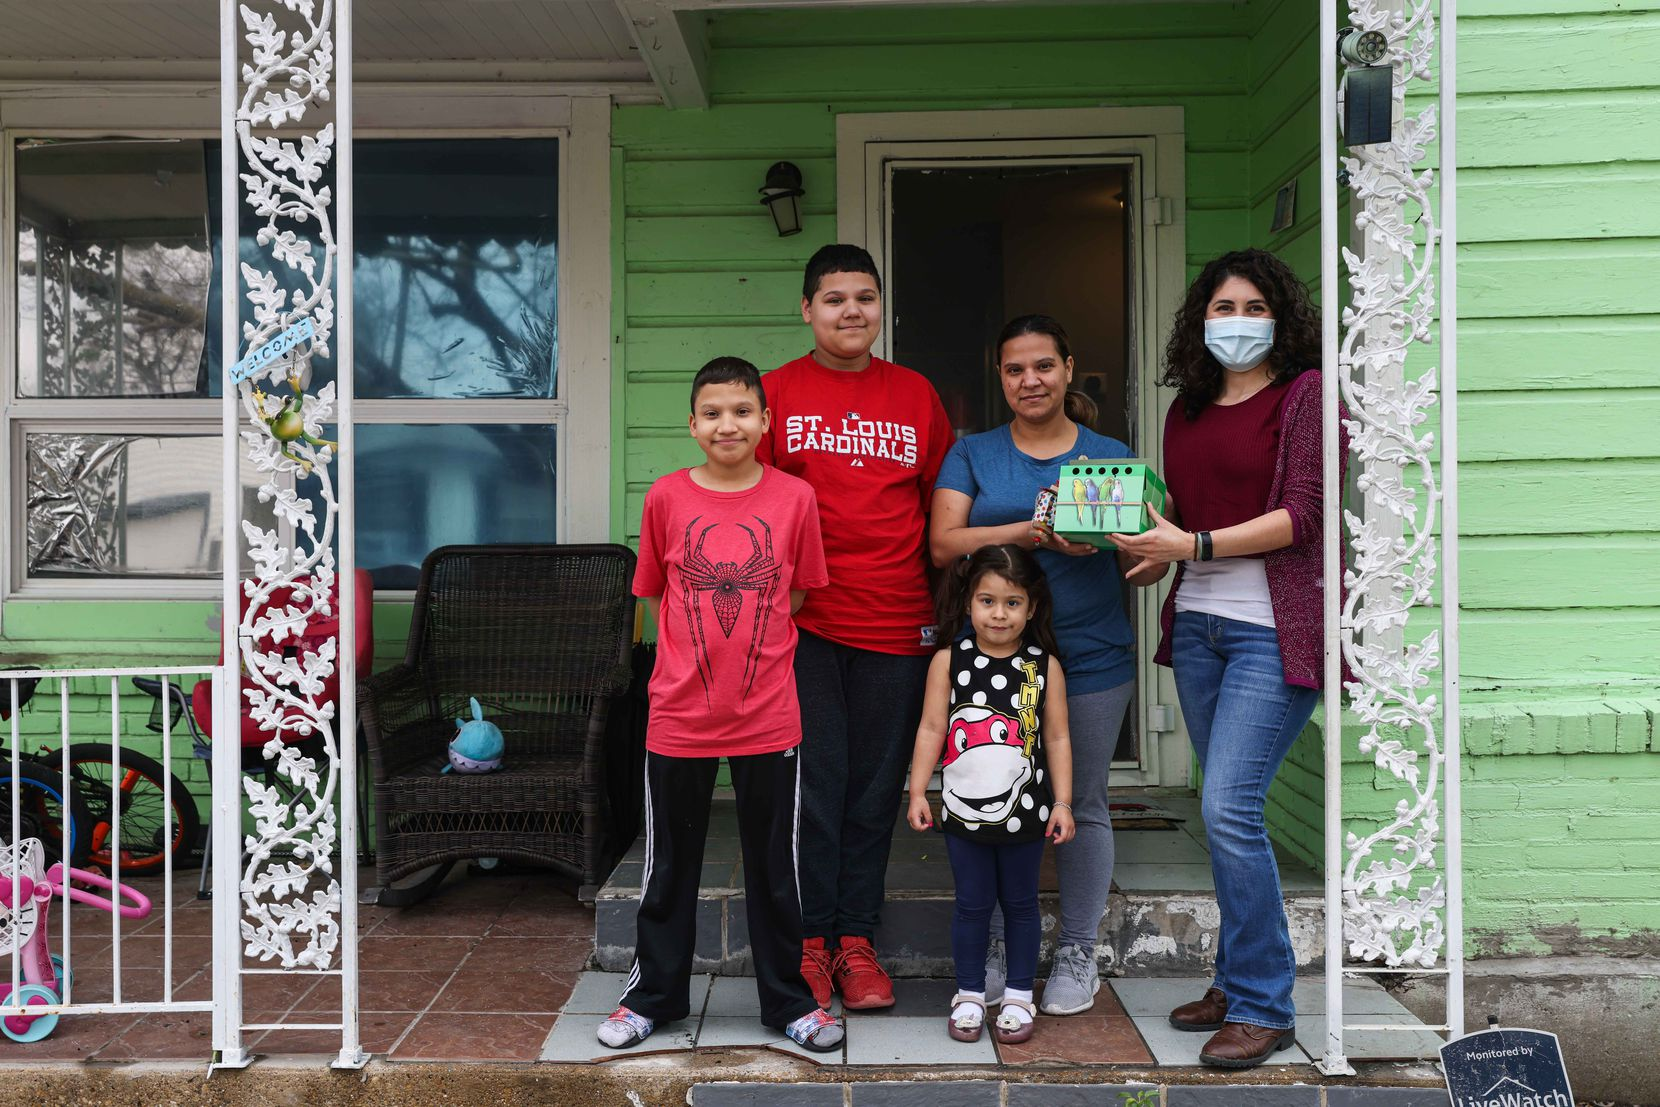 From left, Aaron Hall, Matthew Hall, Marleny Almendarez, Madelyne Hernandez and Allison Olivarez, pose together in front of Almendarez home with their new pet bird, a peach-faced Lovebird, in Dallas on Friday, February 26, 2021. They lost their pet bird, Little Rainbow, during the severe winter storm that hit Texas two weeks ago when he froze to death after the power went out in her house for days, bringing the temperature inside around 40 degrees Fahrenheit.